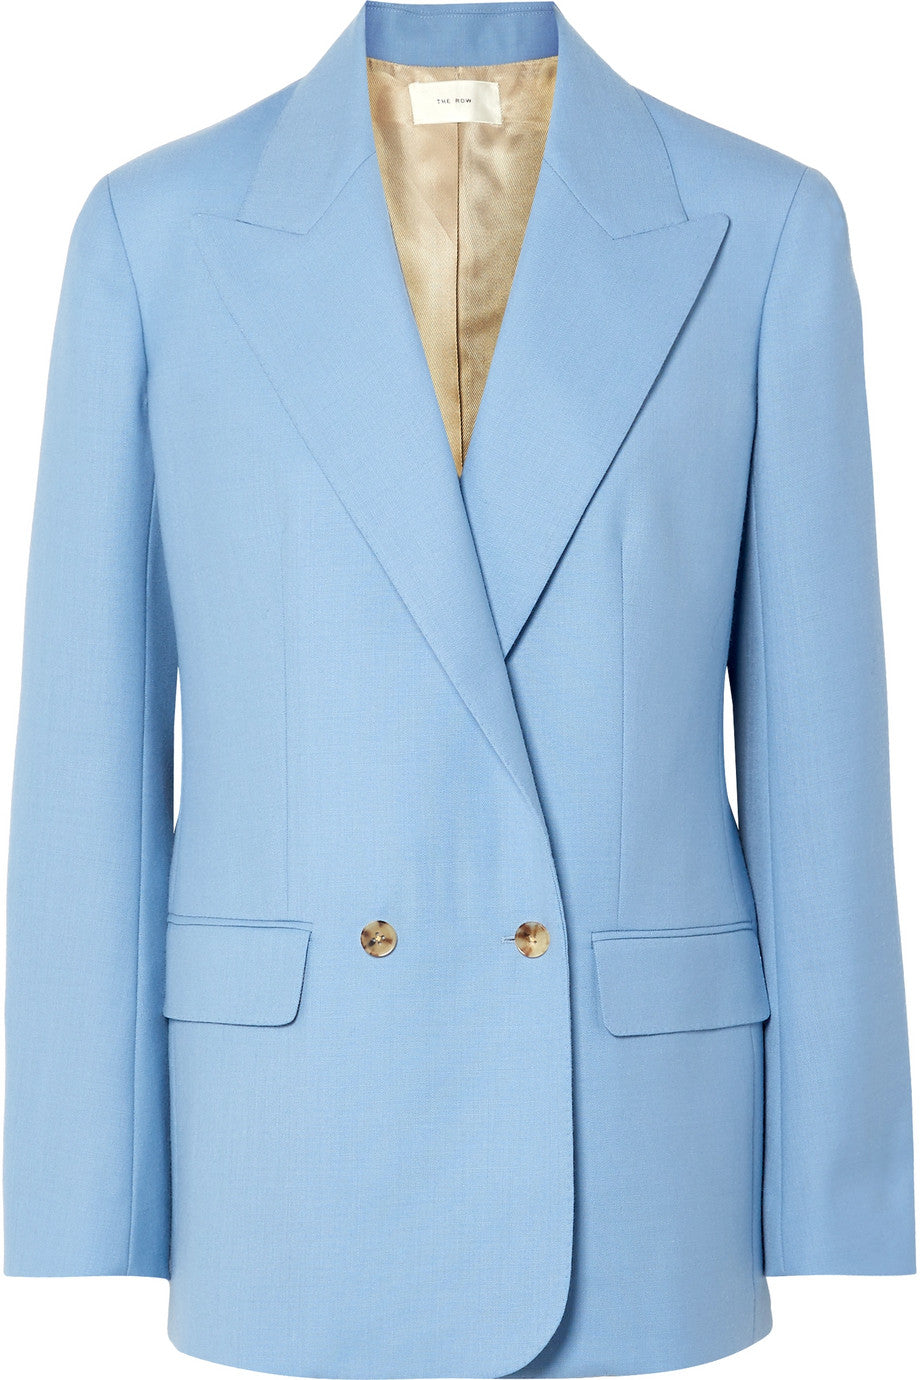 THE ROW- Pesner oversized grain de poudre wool blazer